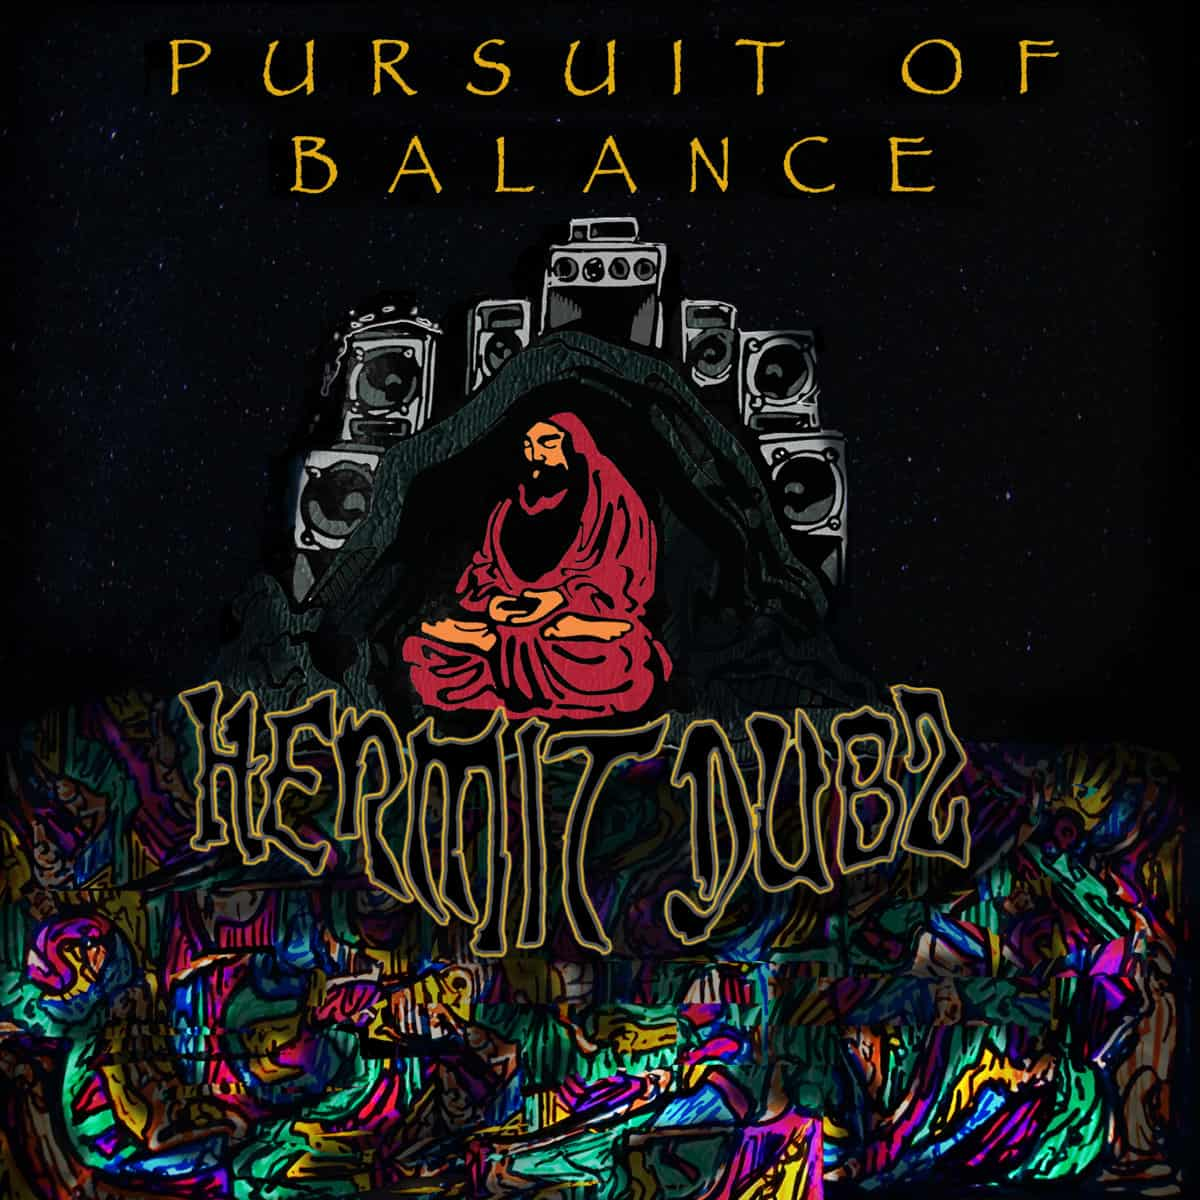 Pursuit of Balance - Hermit Dubz is out of his cave again! • full Album-Stream